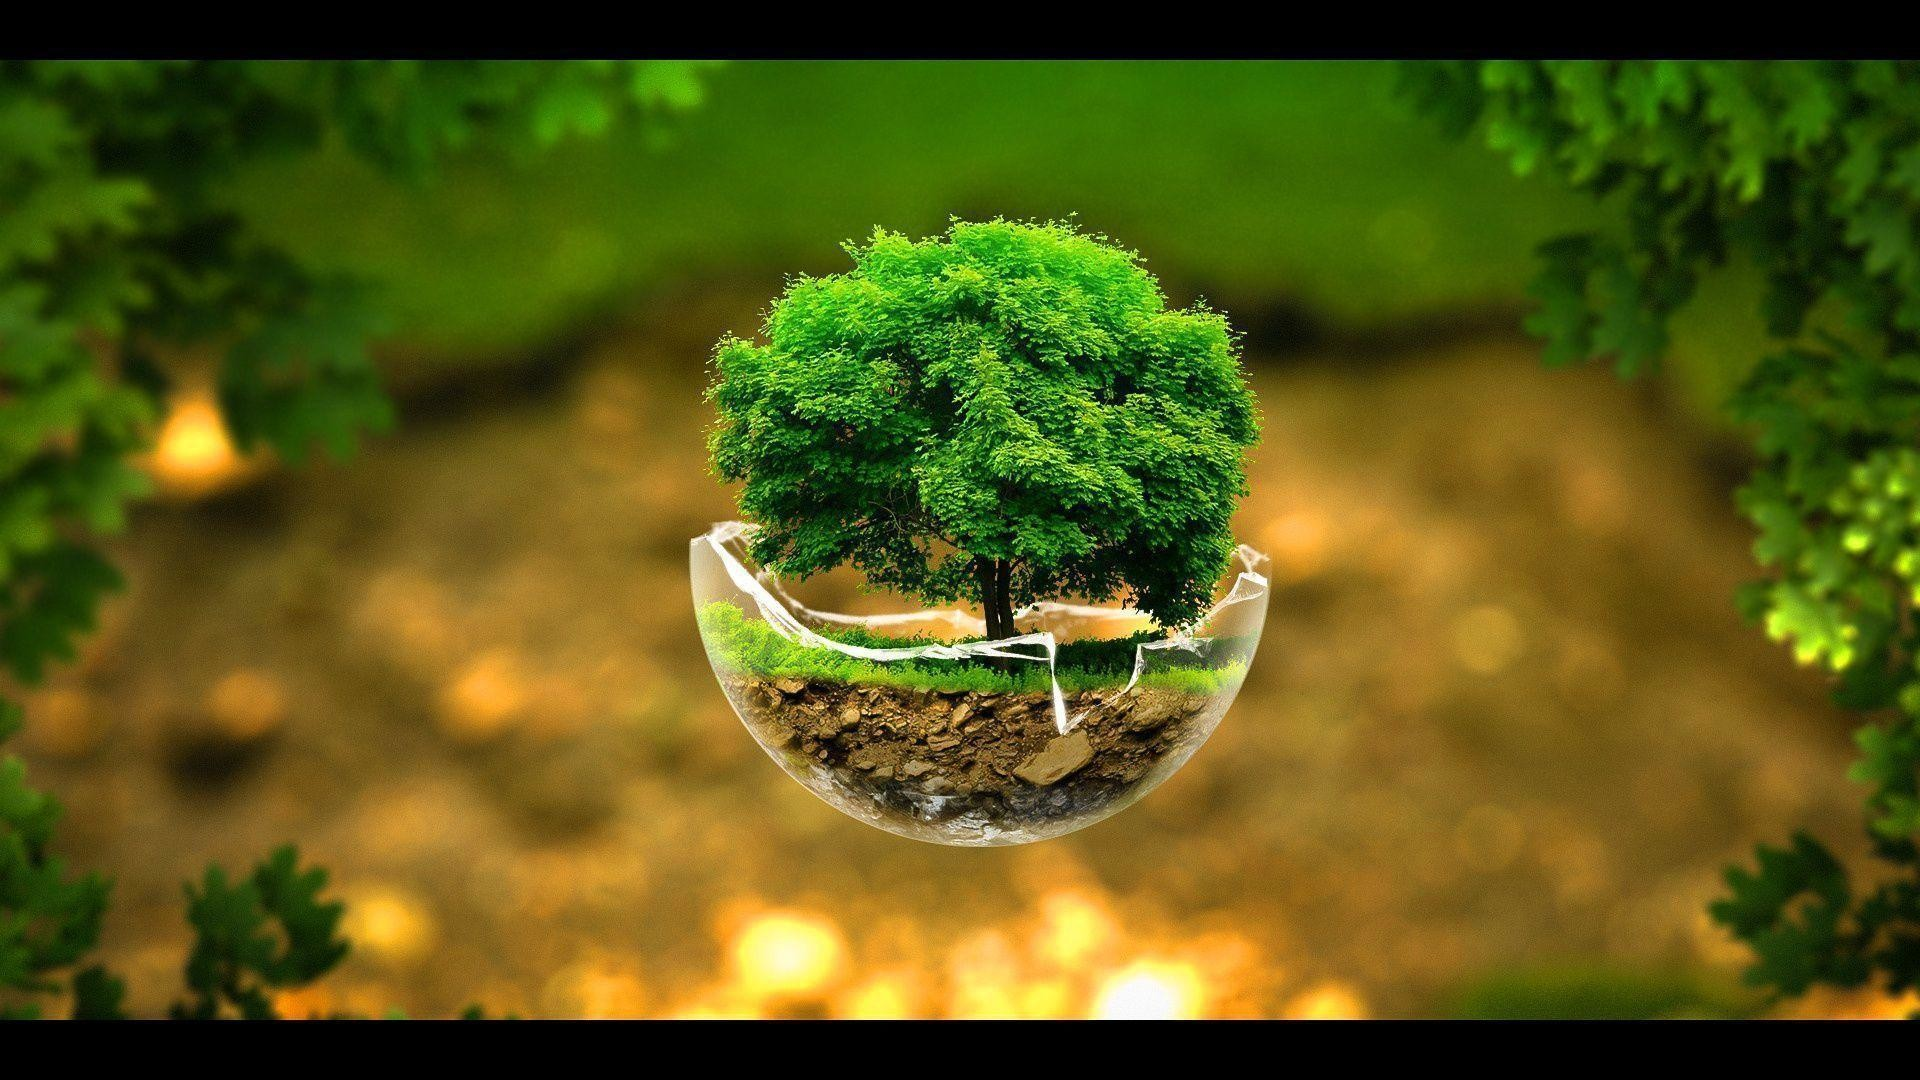 Tree Background Wallpaper 58 Images